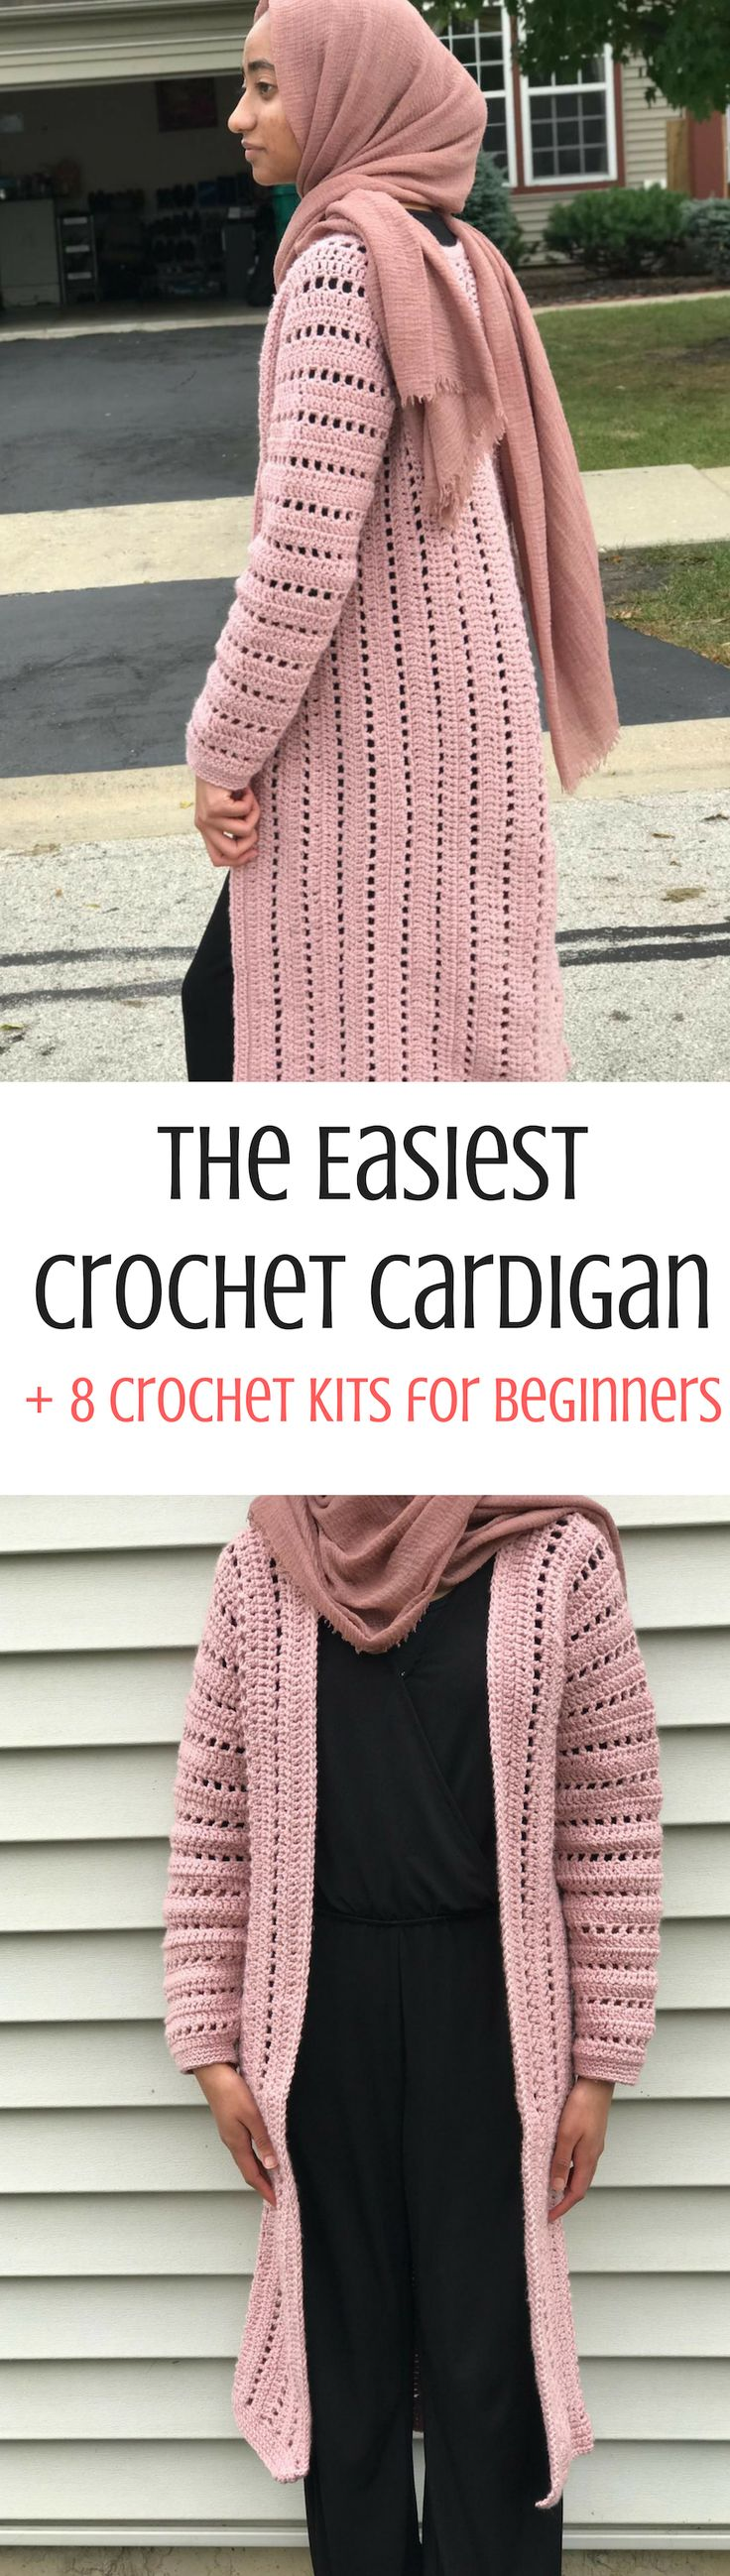 Are you a crochet beginner? Here's a crochet cardigan pattern that is so eas…